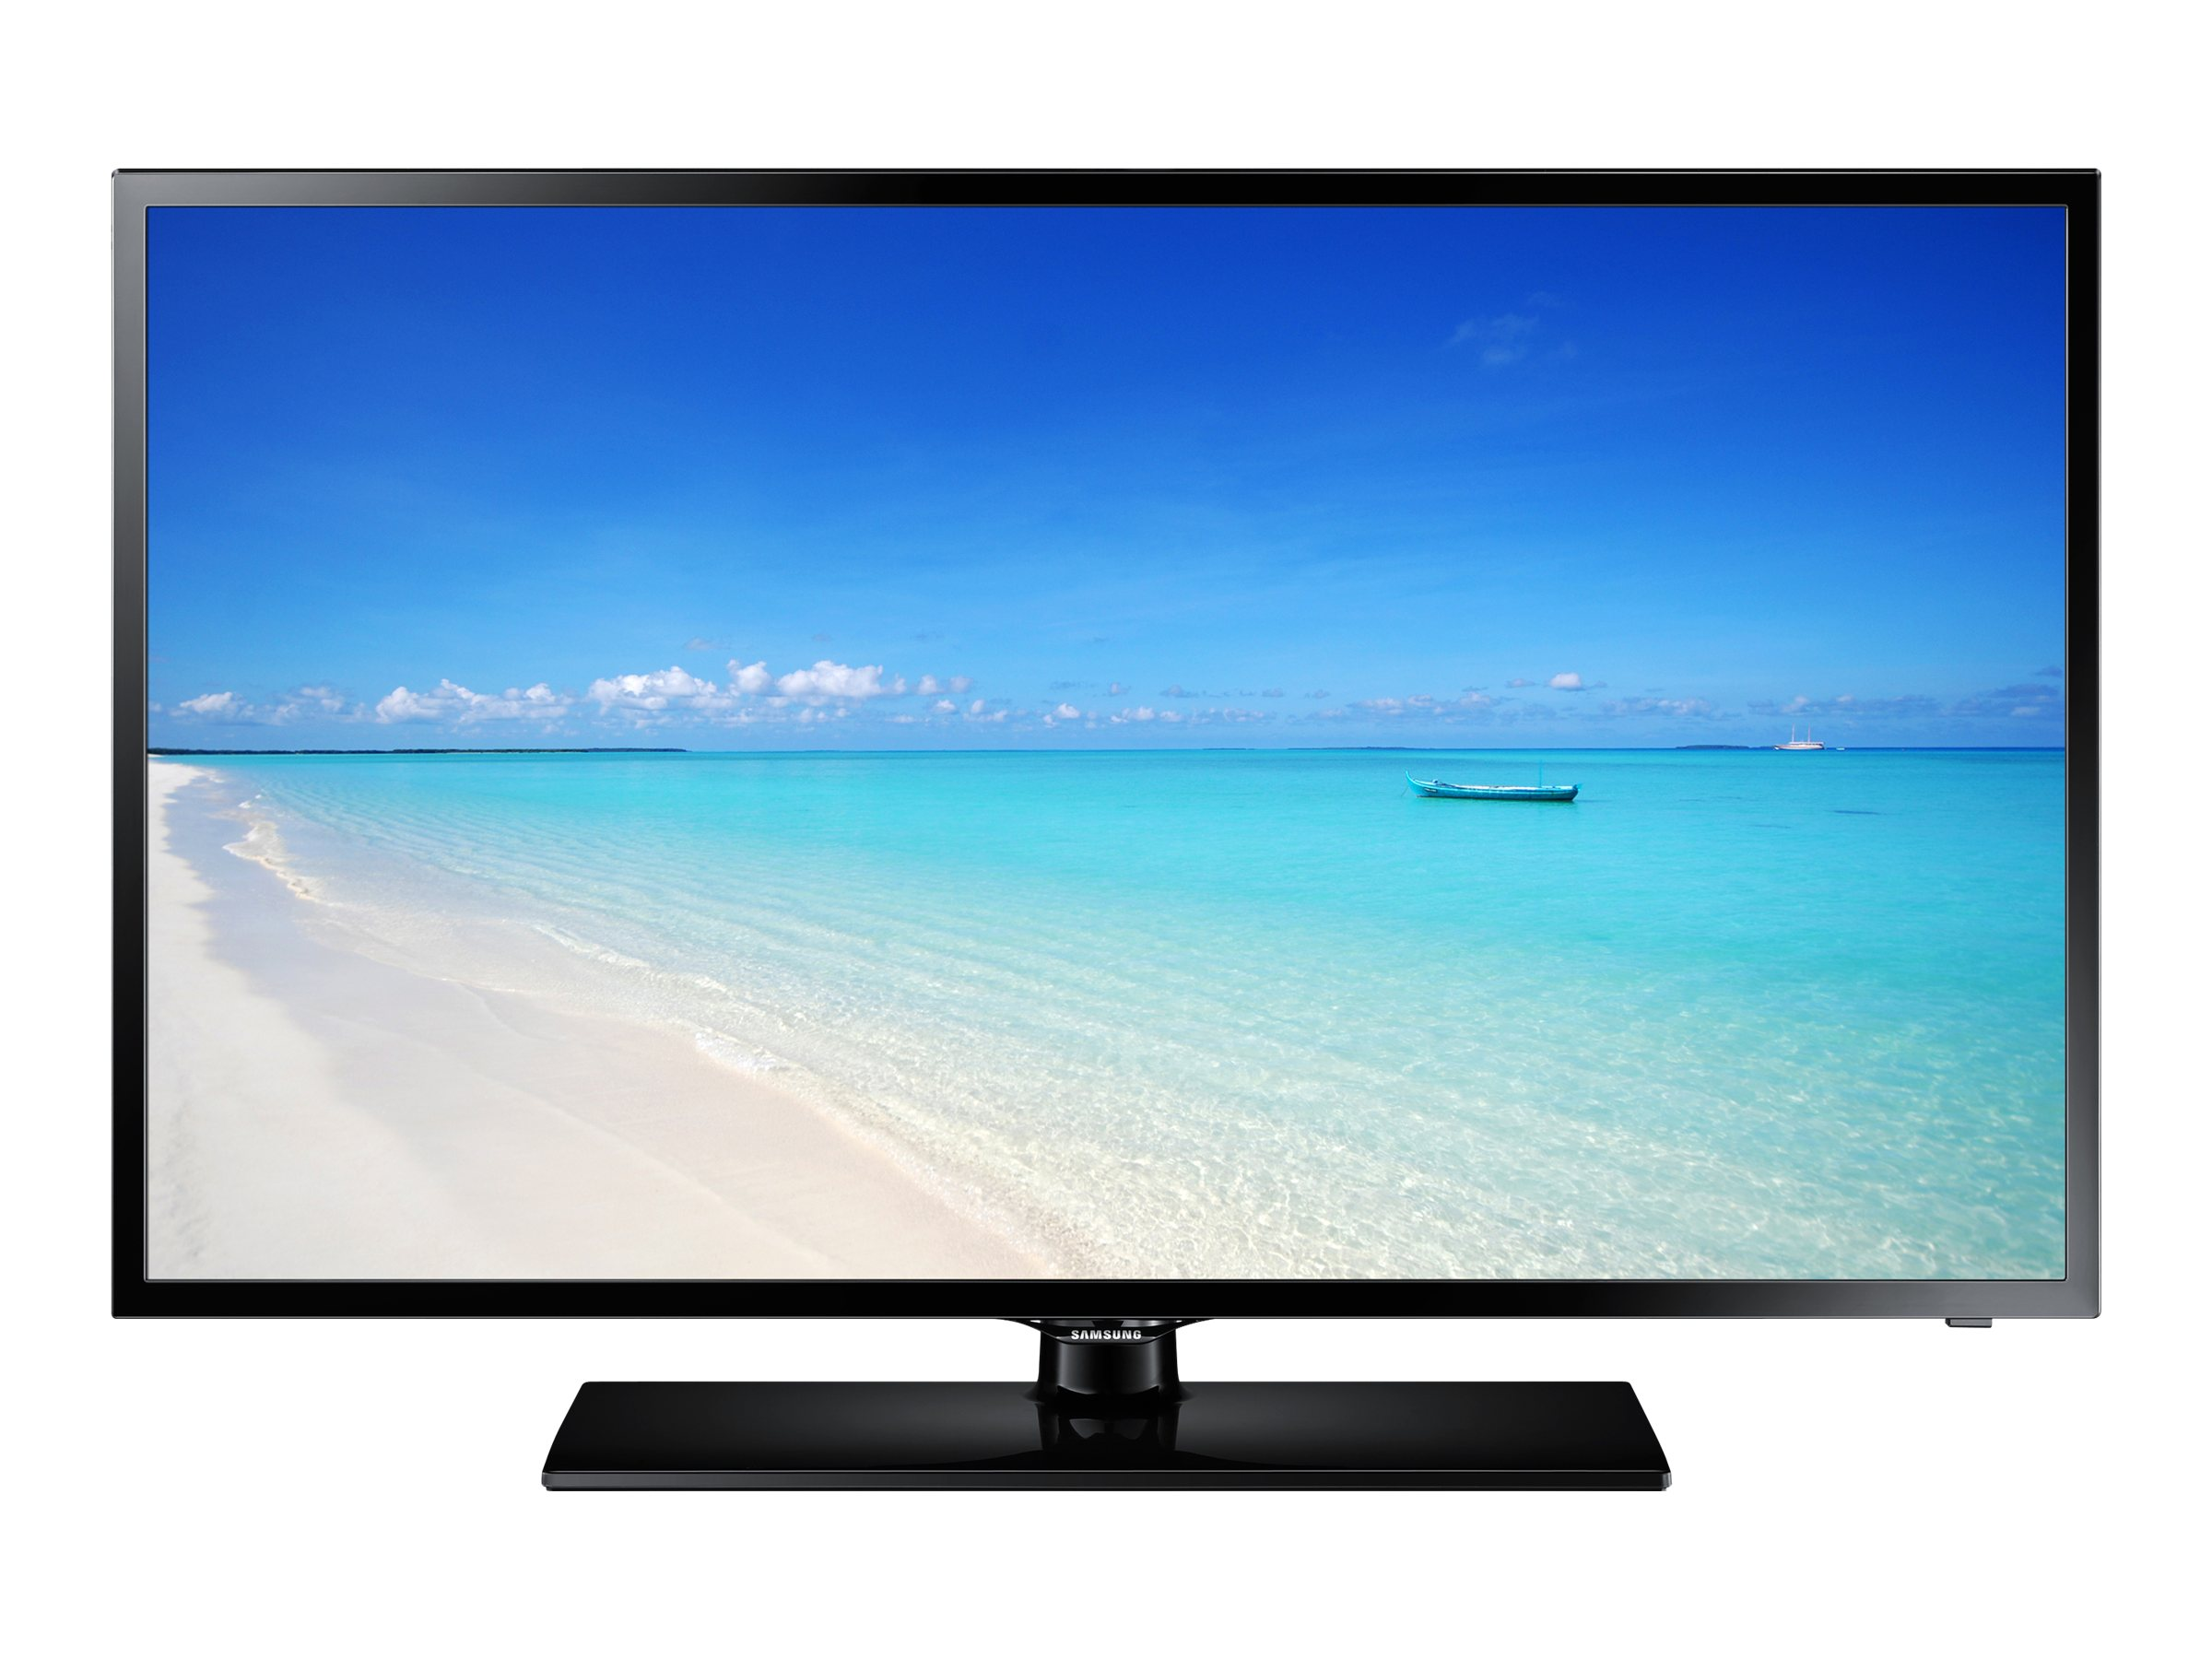 Samsung 46 670 Series Full HD Direct-Lit Hospitality LED-LCD TV, Black, HG46NB670FFXZA, 16427990, Televisions - LED-LCD Commercial